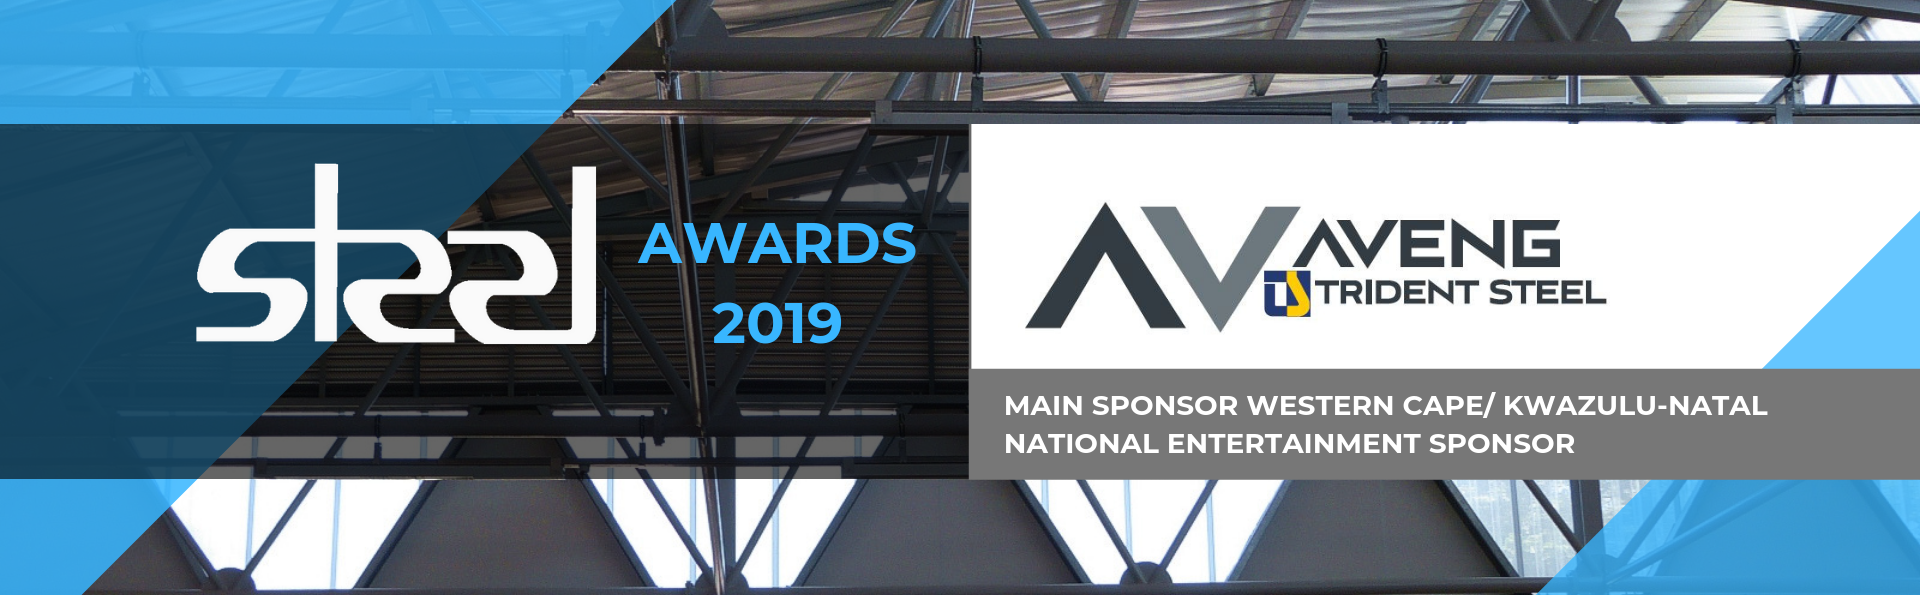 Aveng Trident Steel-Steel Awards Sponsor Announcement